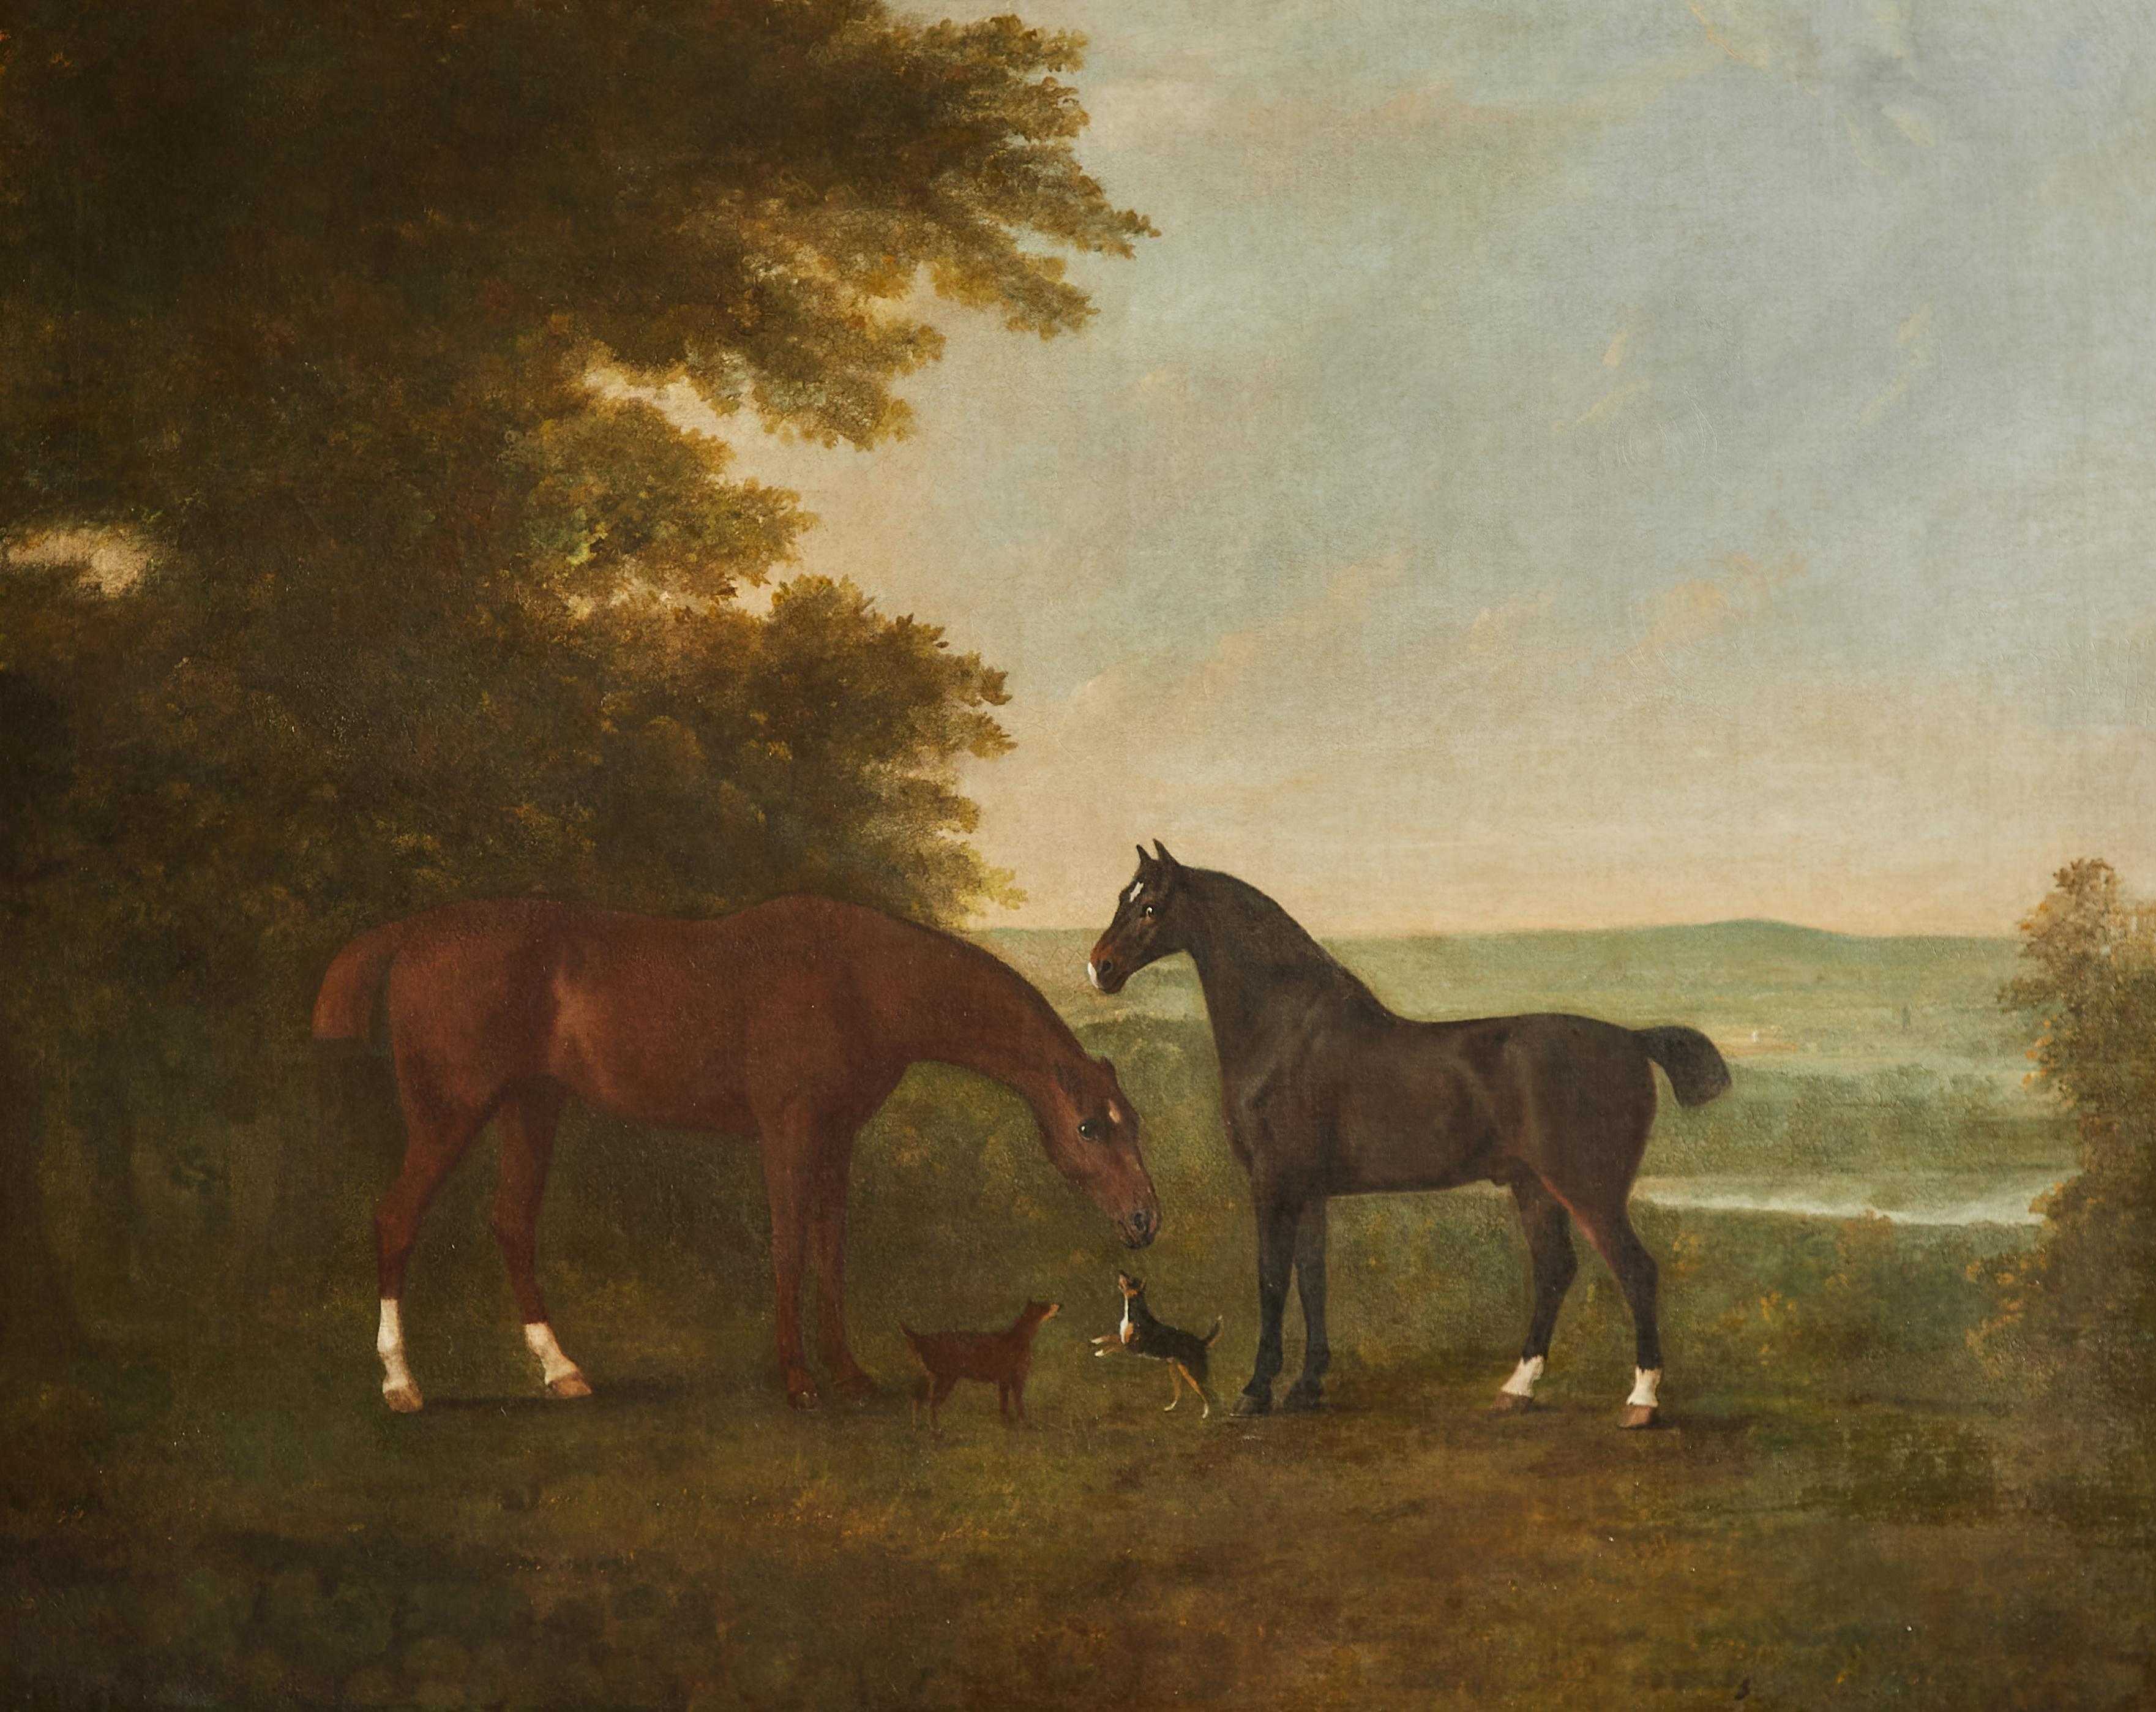 Horses with accompanying dogs in an extensive English landscape, 18th century